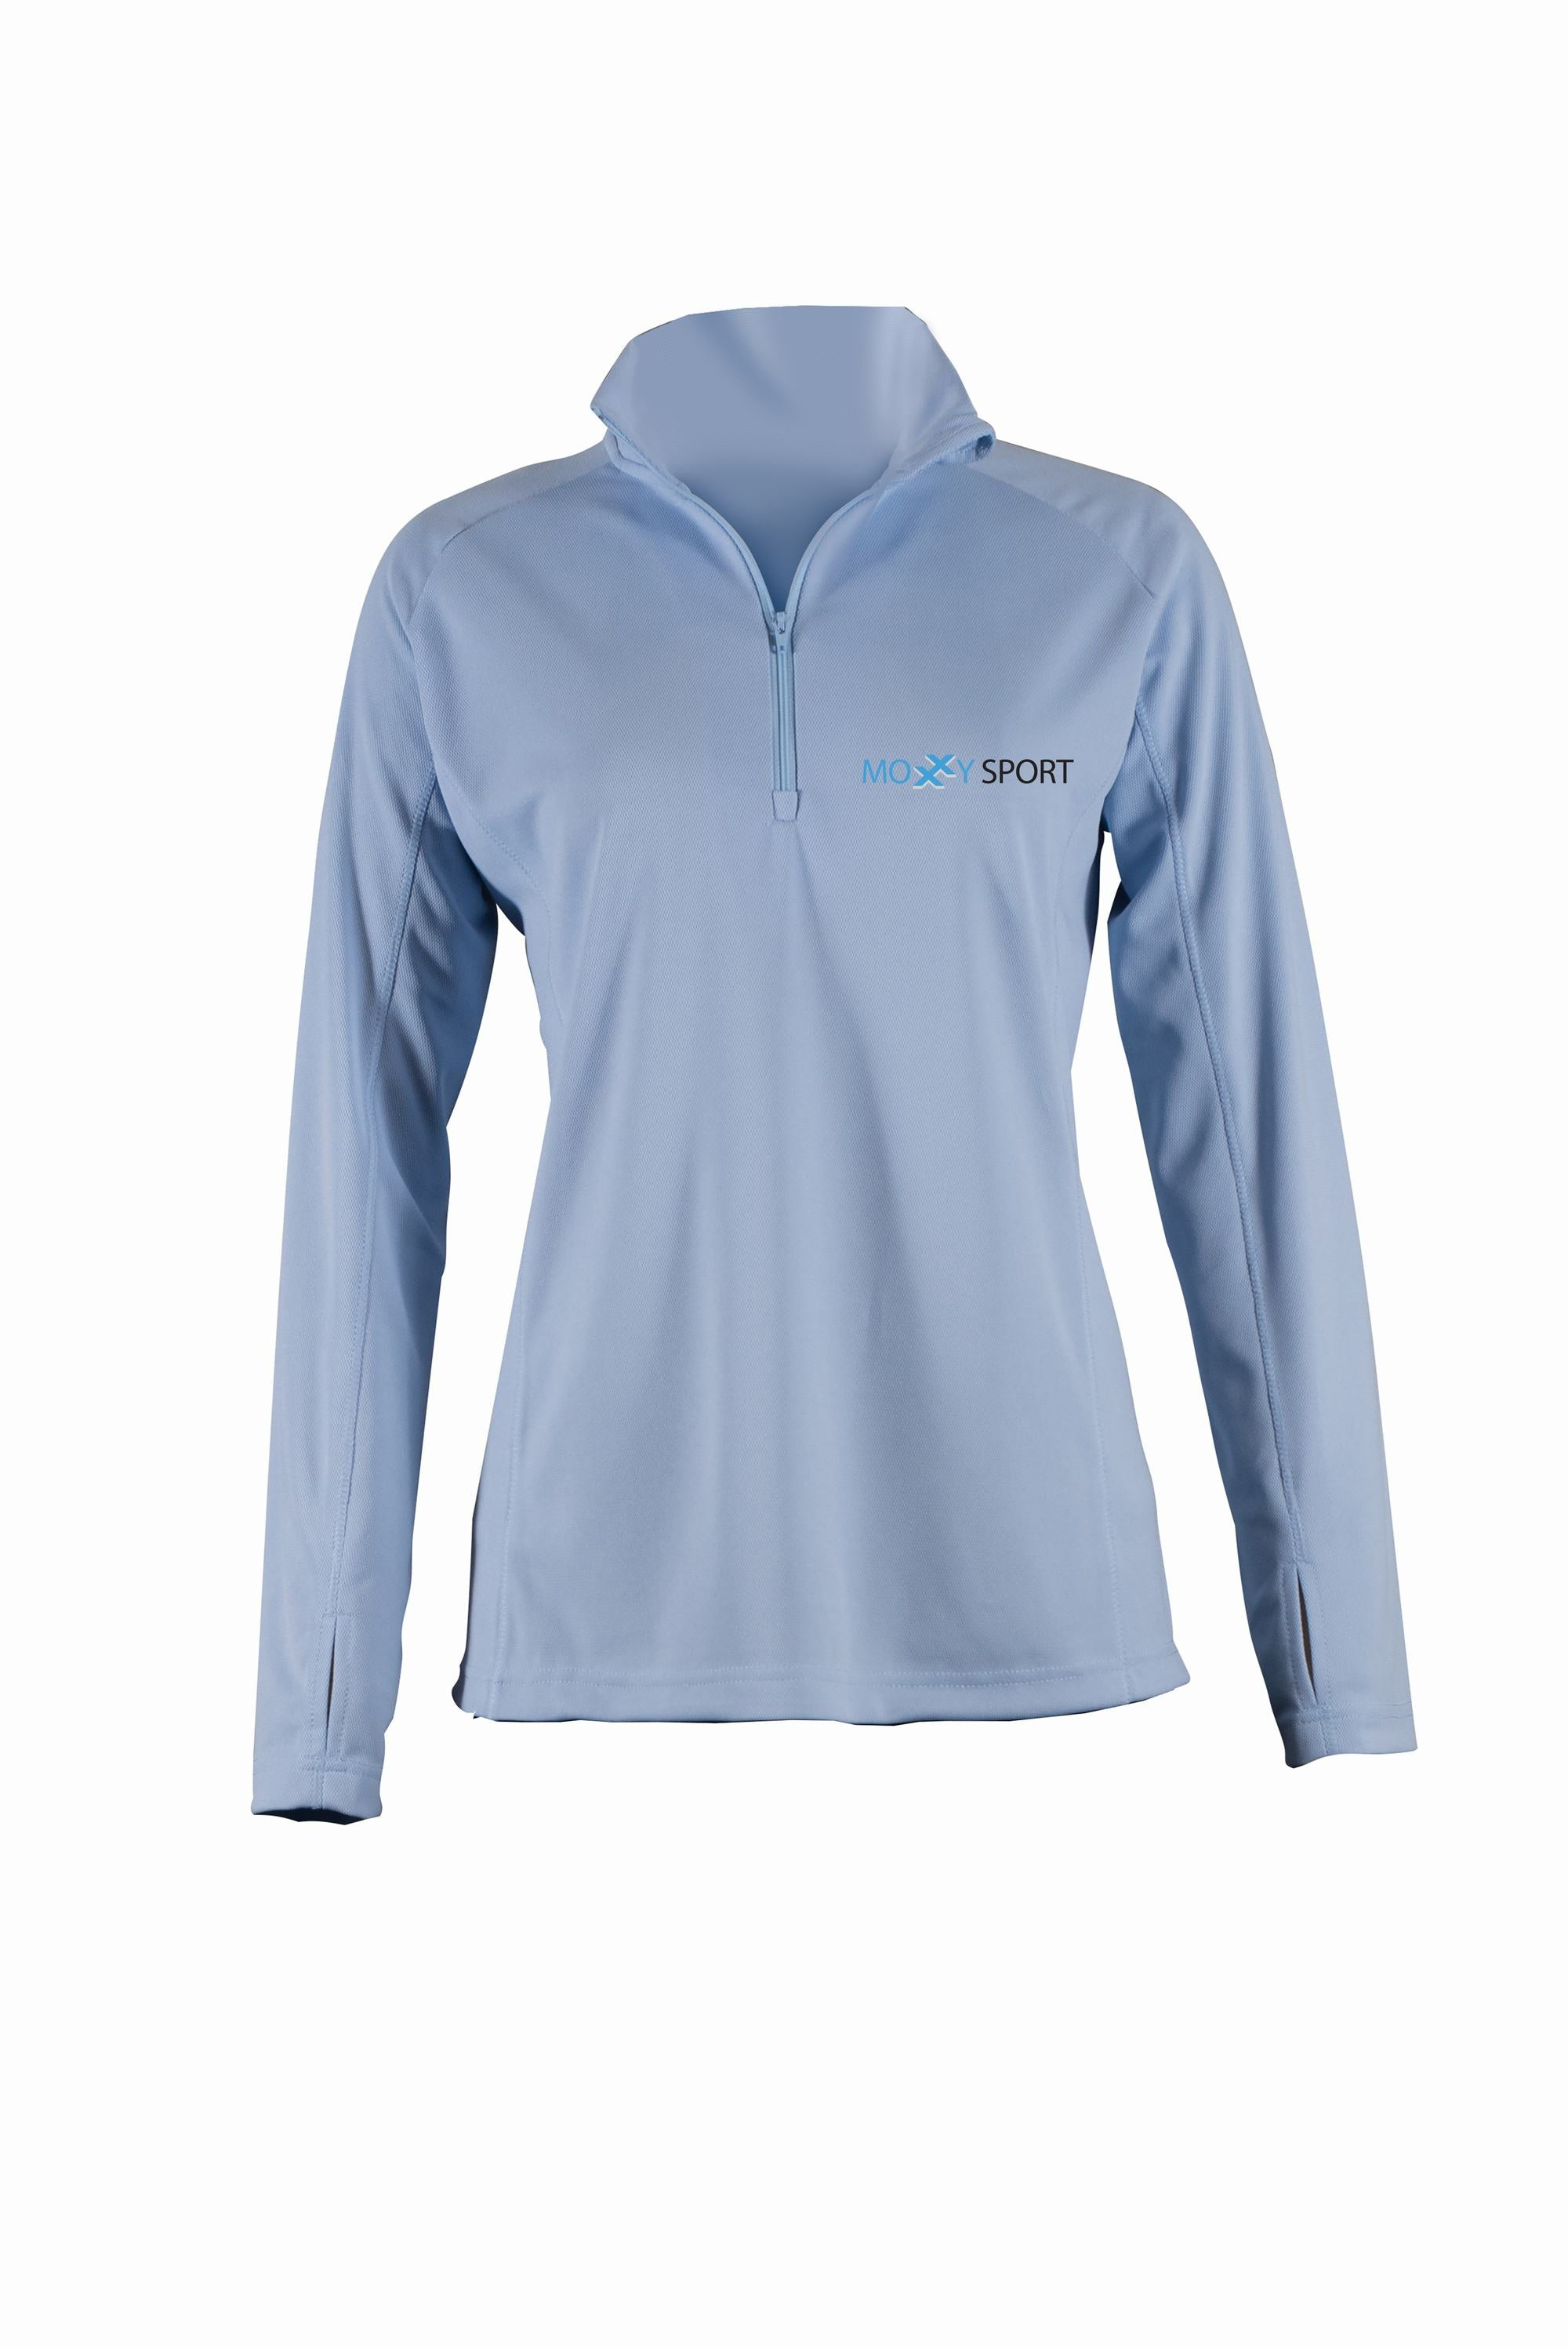 Court dry half zipped training shirt- women